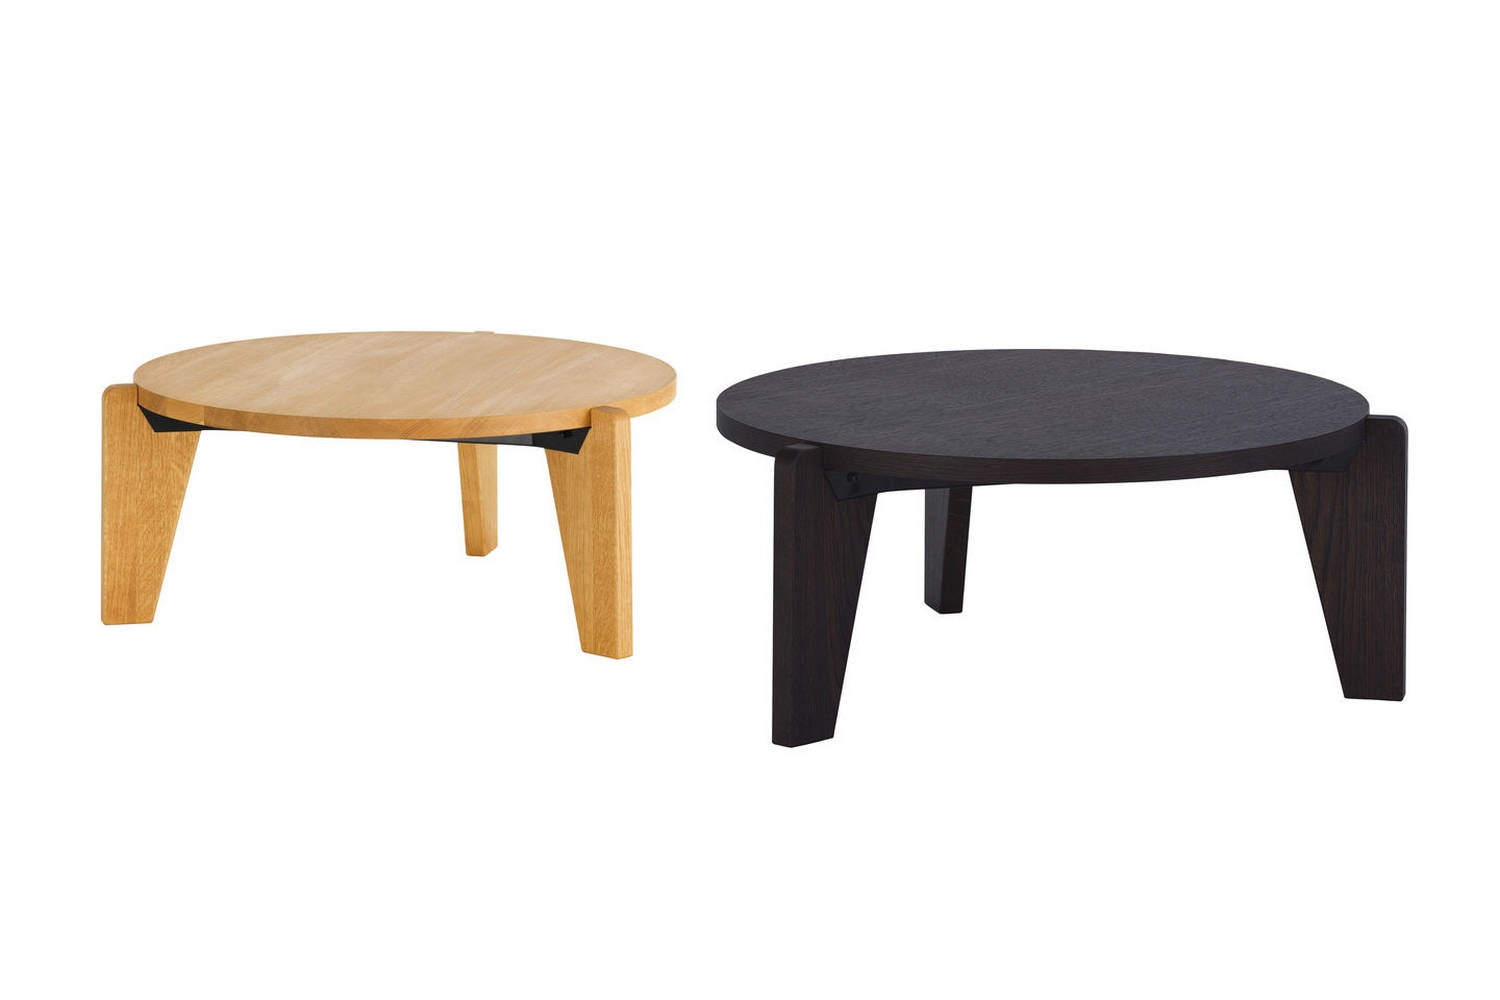 Gueridon Bas Coffee Table by Jean Prouve for Vitra